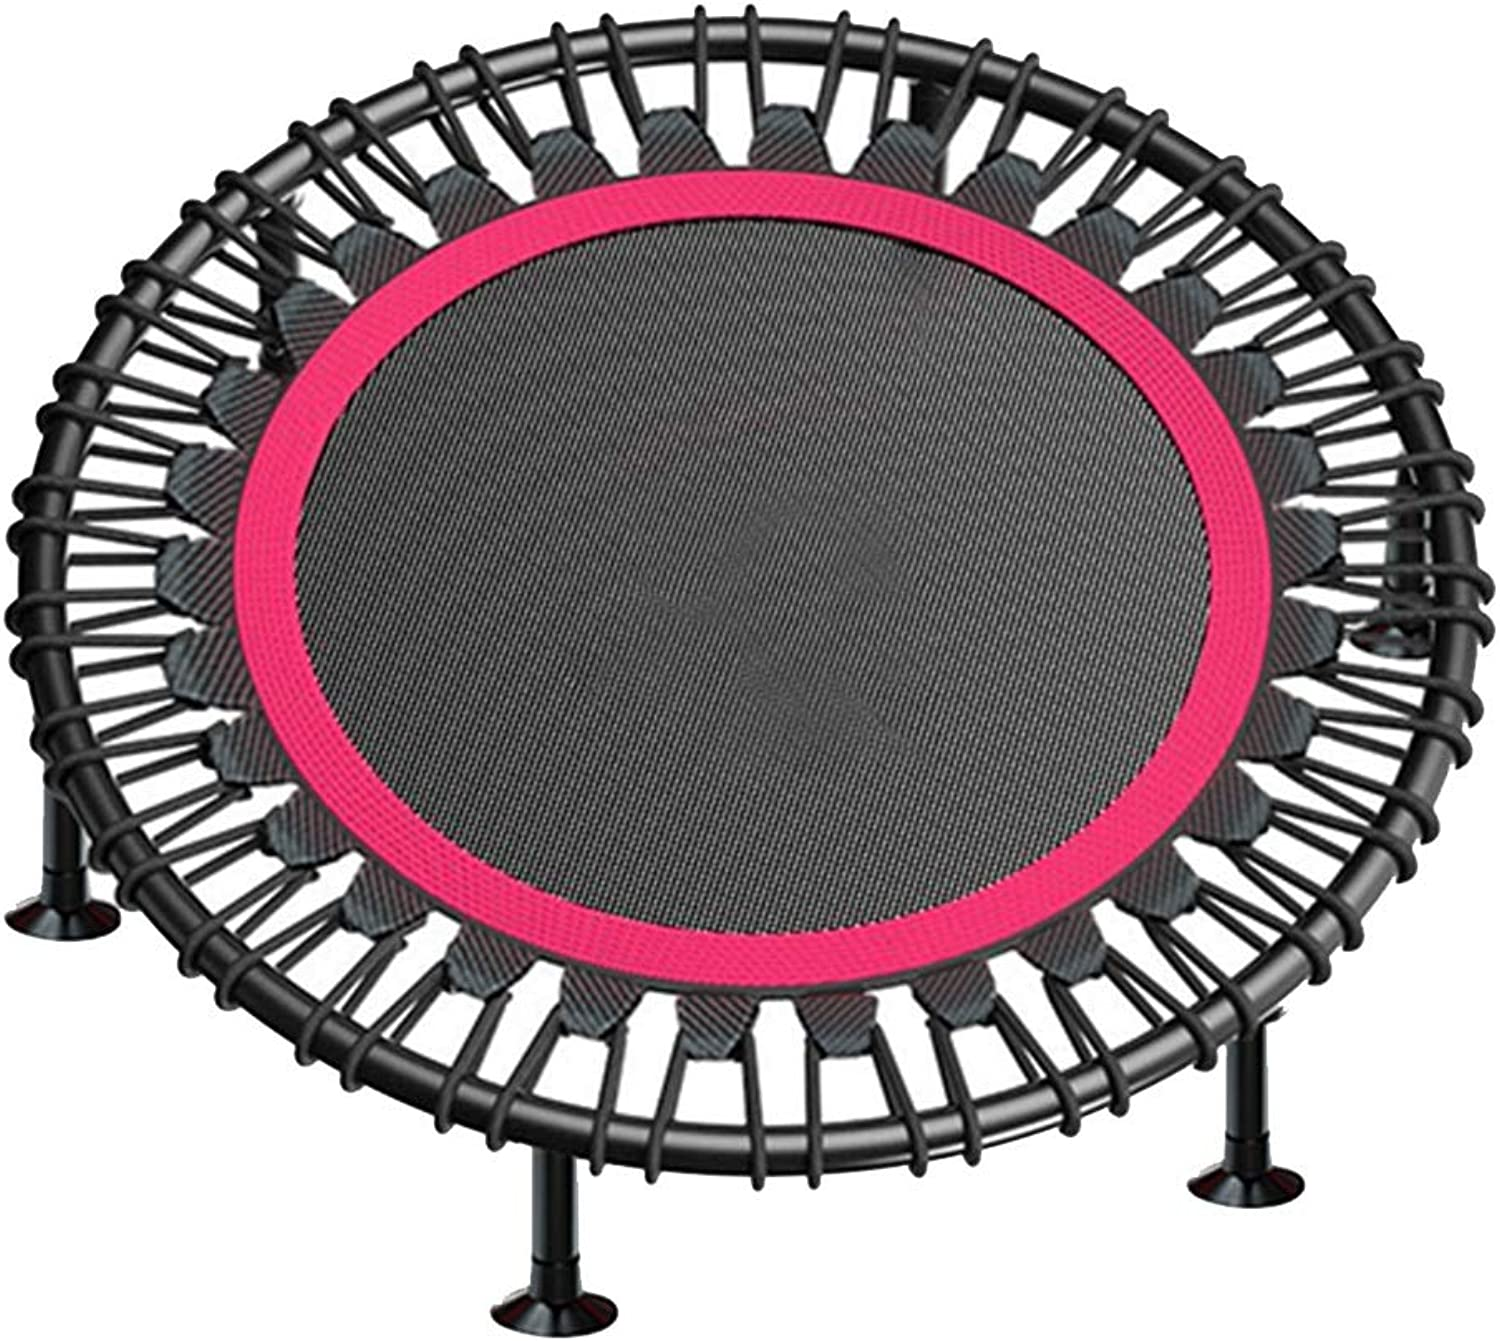 ZYX KFXL Fitness Trampolines Trampoline - With Suction Cup Adult Fitness Trampoline For Kids Indoor Trampoline Indoor trampoline